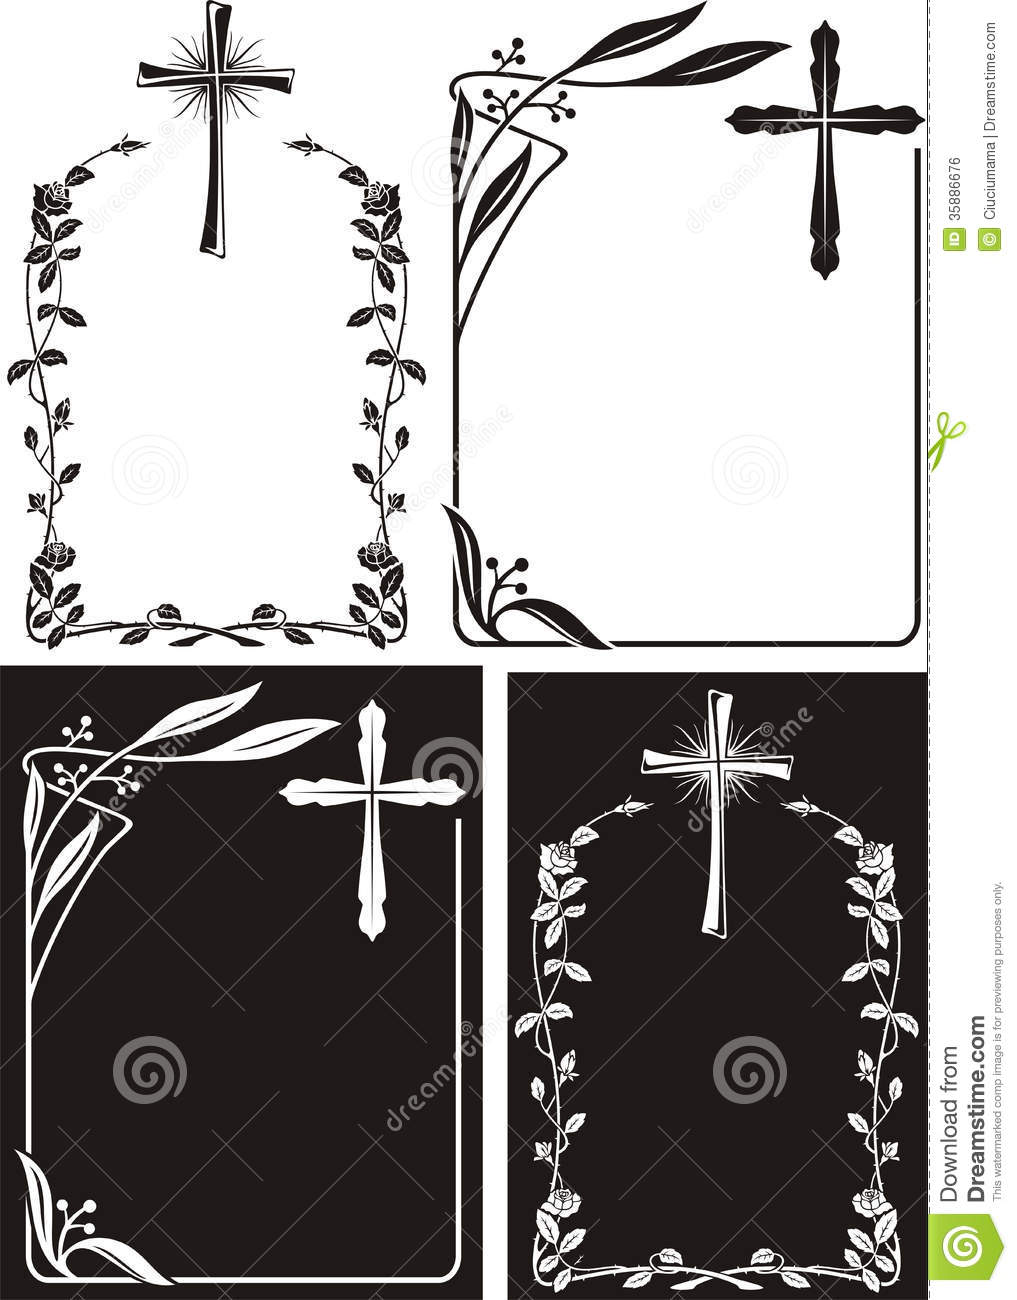 Obituary - Art Deco Frames With Cross Stock Vector - Illustration of ...